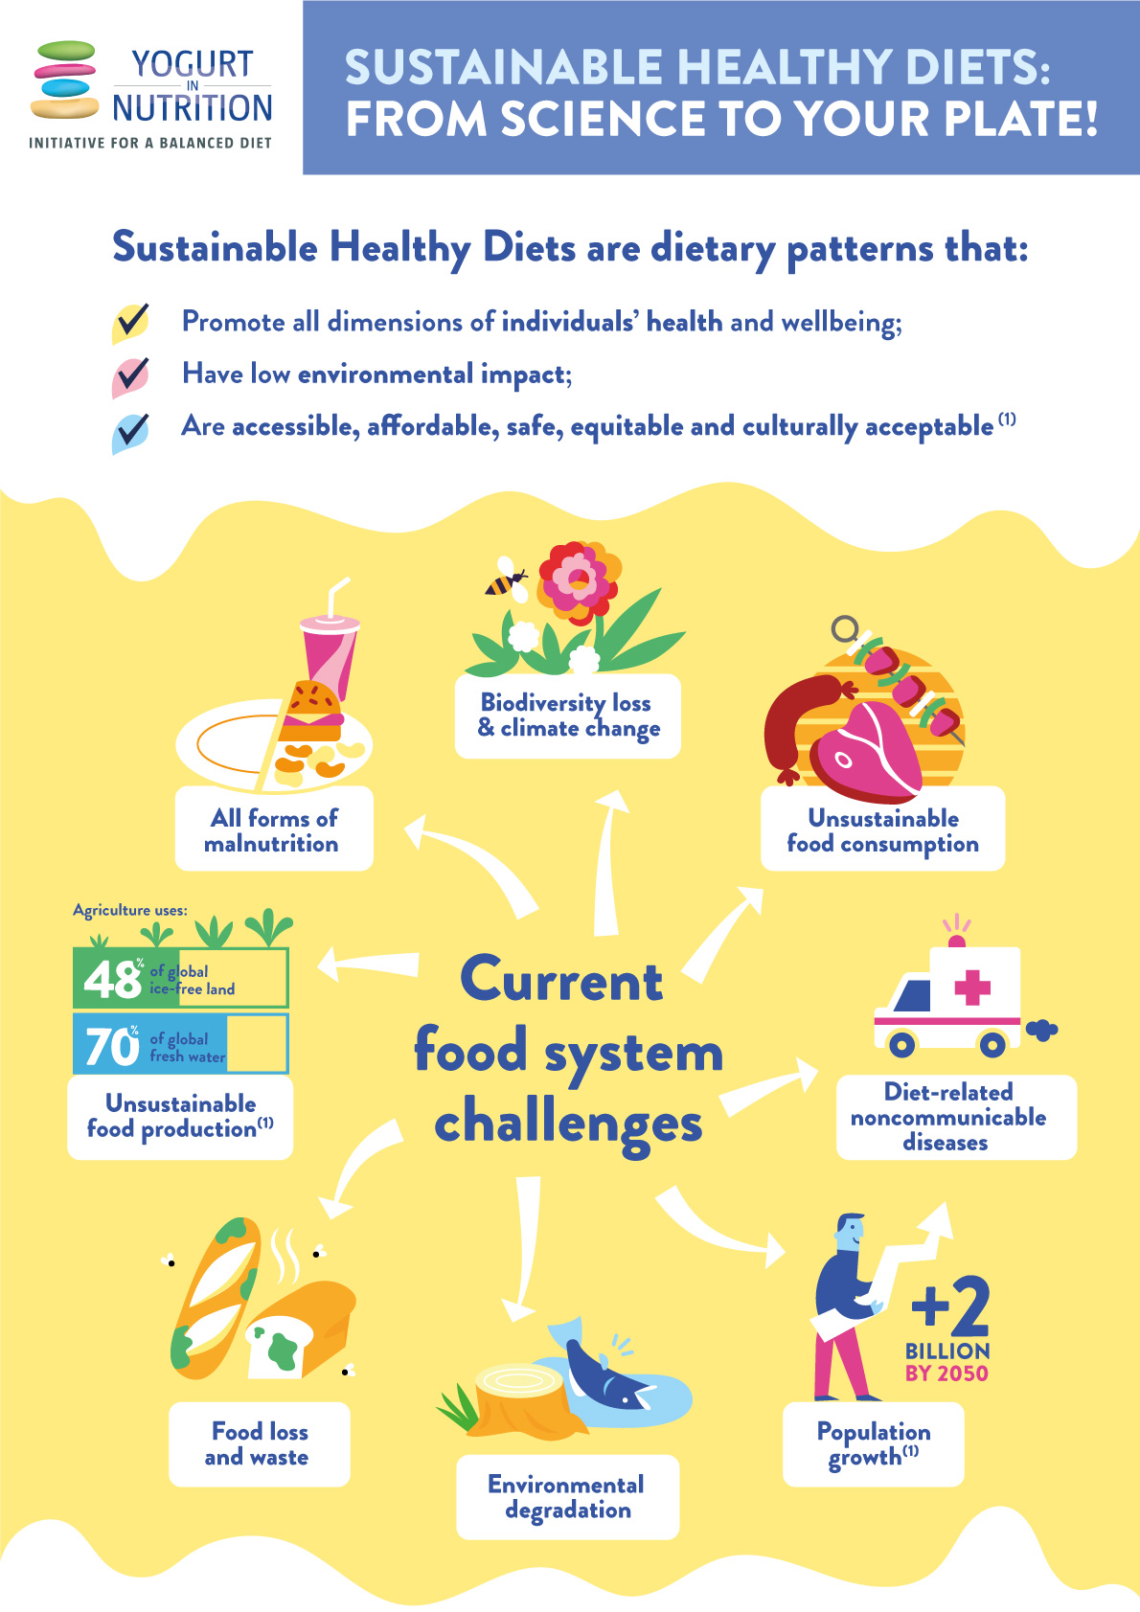 Sustainable healthy diets: from science to your plate!